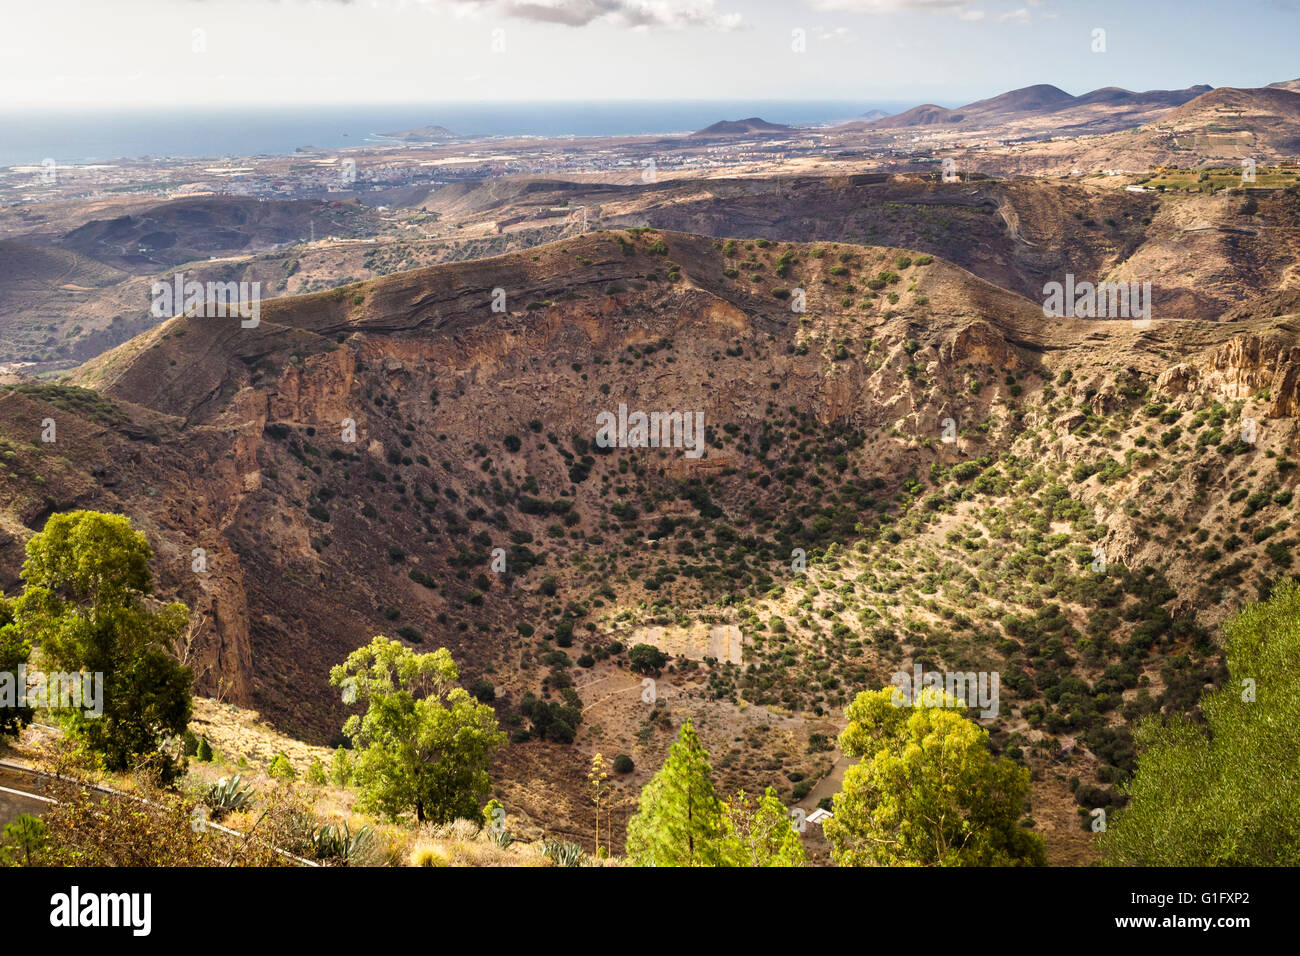 Caldera de Bandama, volcanic crater on the island of Gran ...